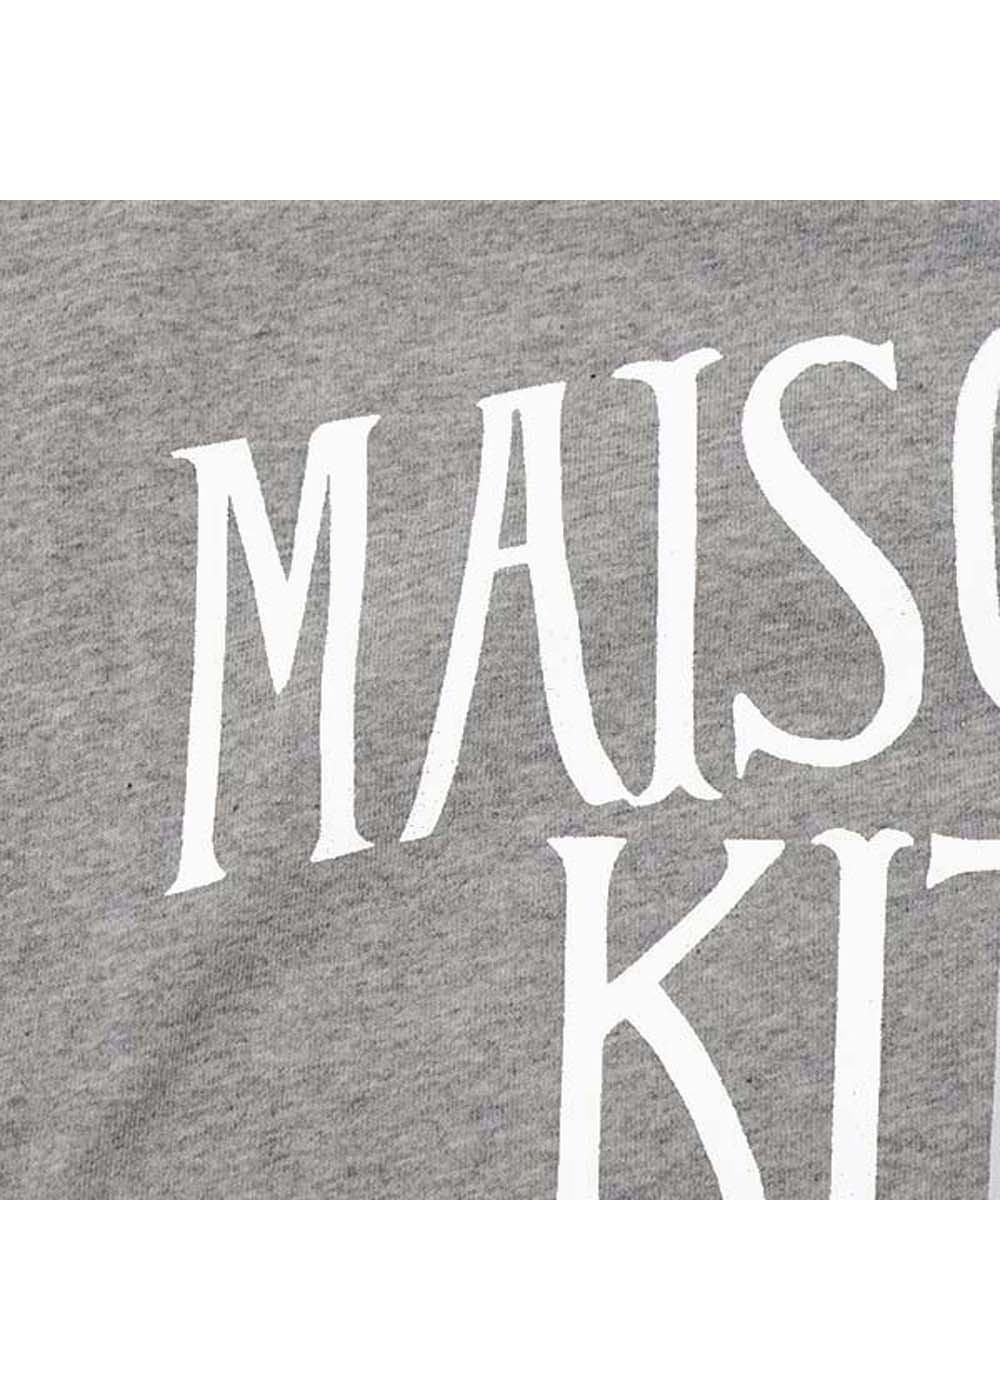 【最大35%OFF】TEE-SHIRT PALAIS ROYAL|GREY MELANGE|Tシャツ|MAISON KITSUNE(C)